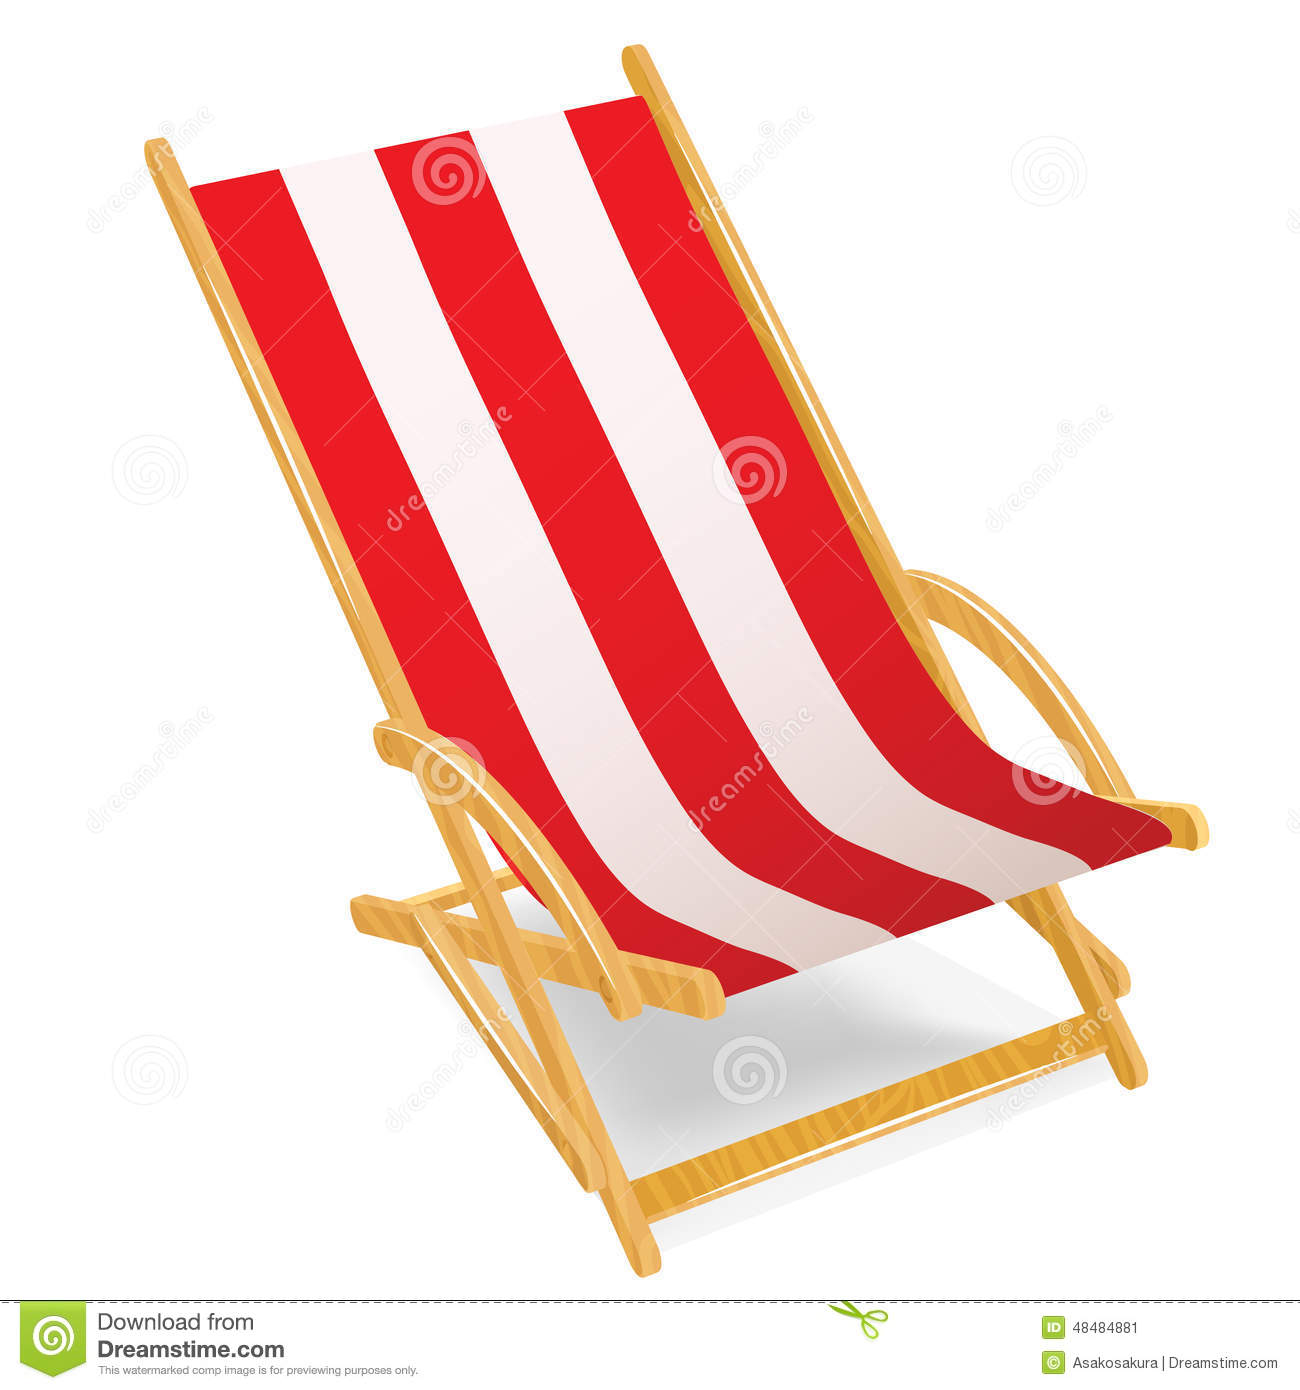 Wooden beach chaise longue isolated on white stock vector for Chaise longue de plage